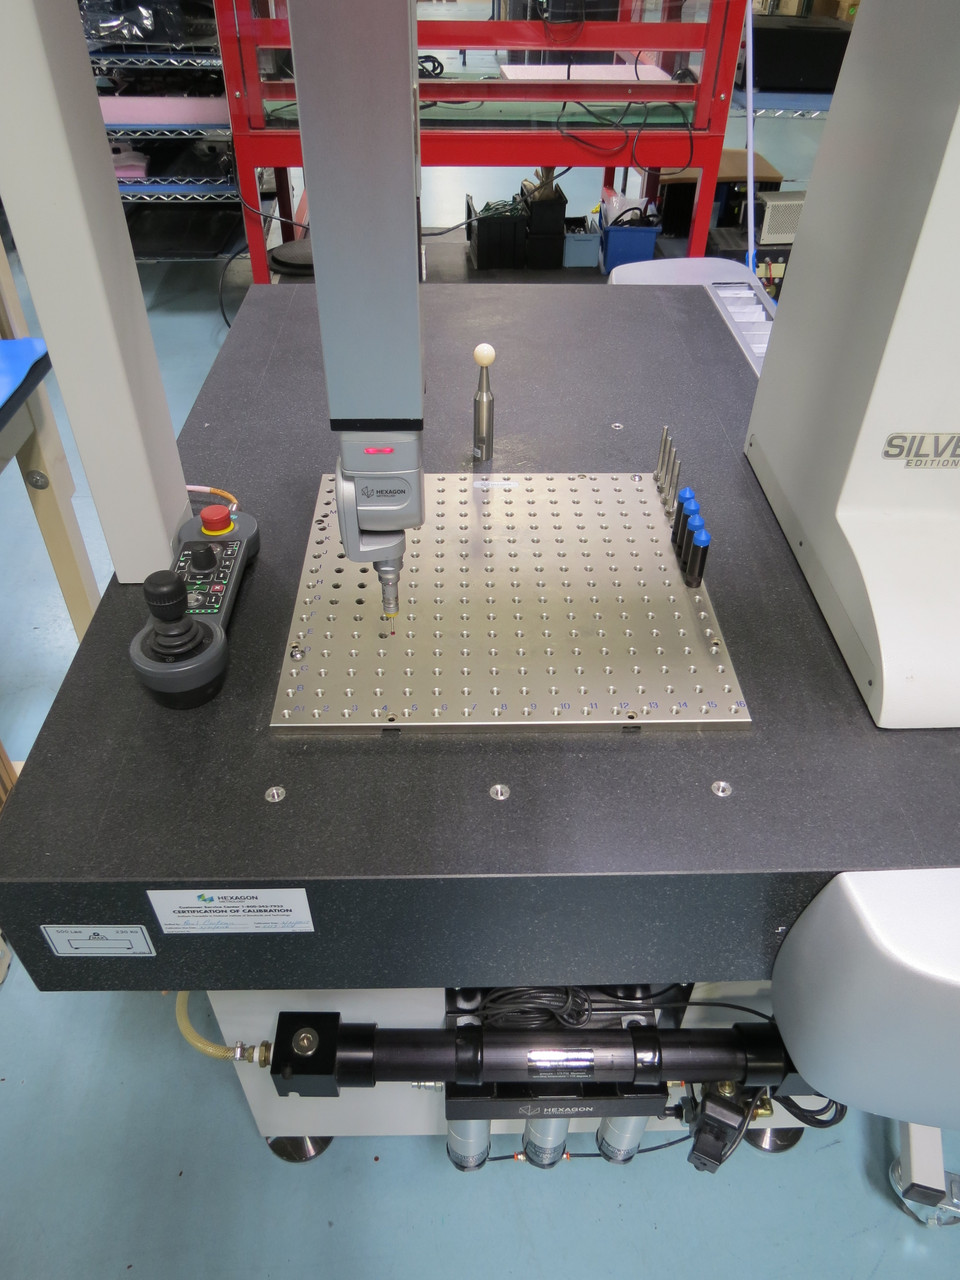 Hexagon (Brown & Sharpe) Global Performance Silver Edition 05.07.05 Coordinate Measuring Machine